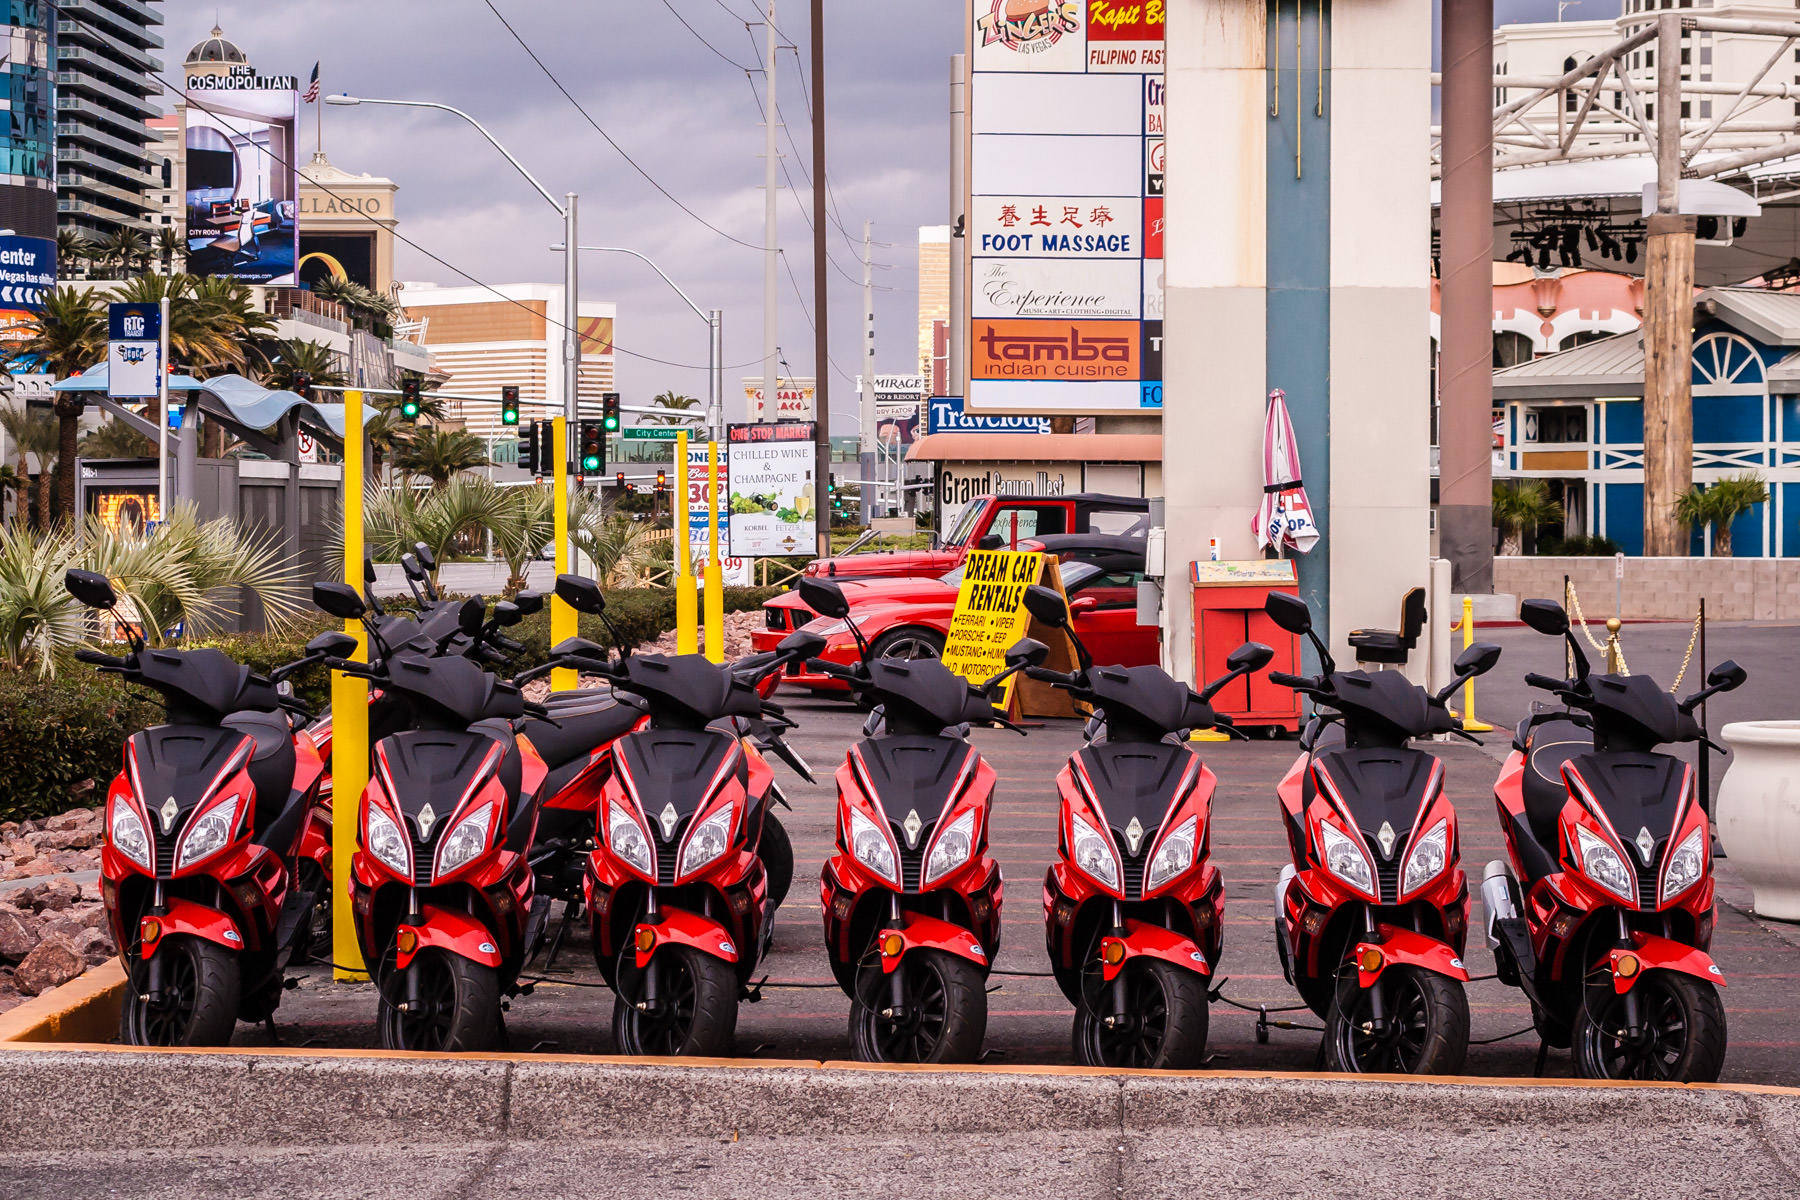 Scooters for rent in Las Vegas.